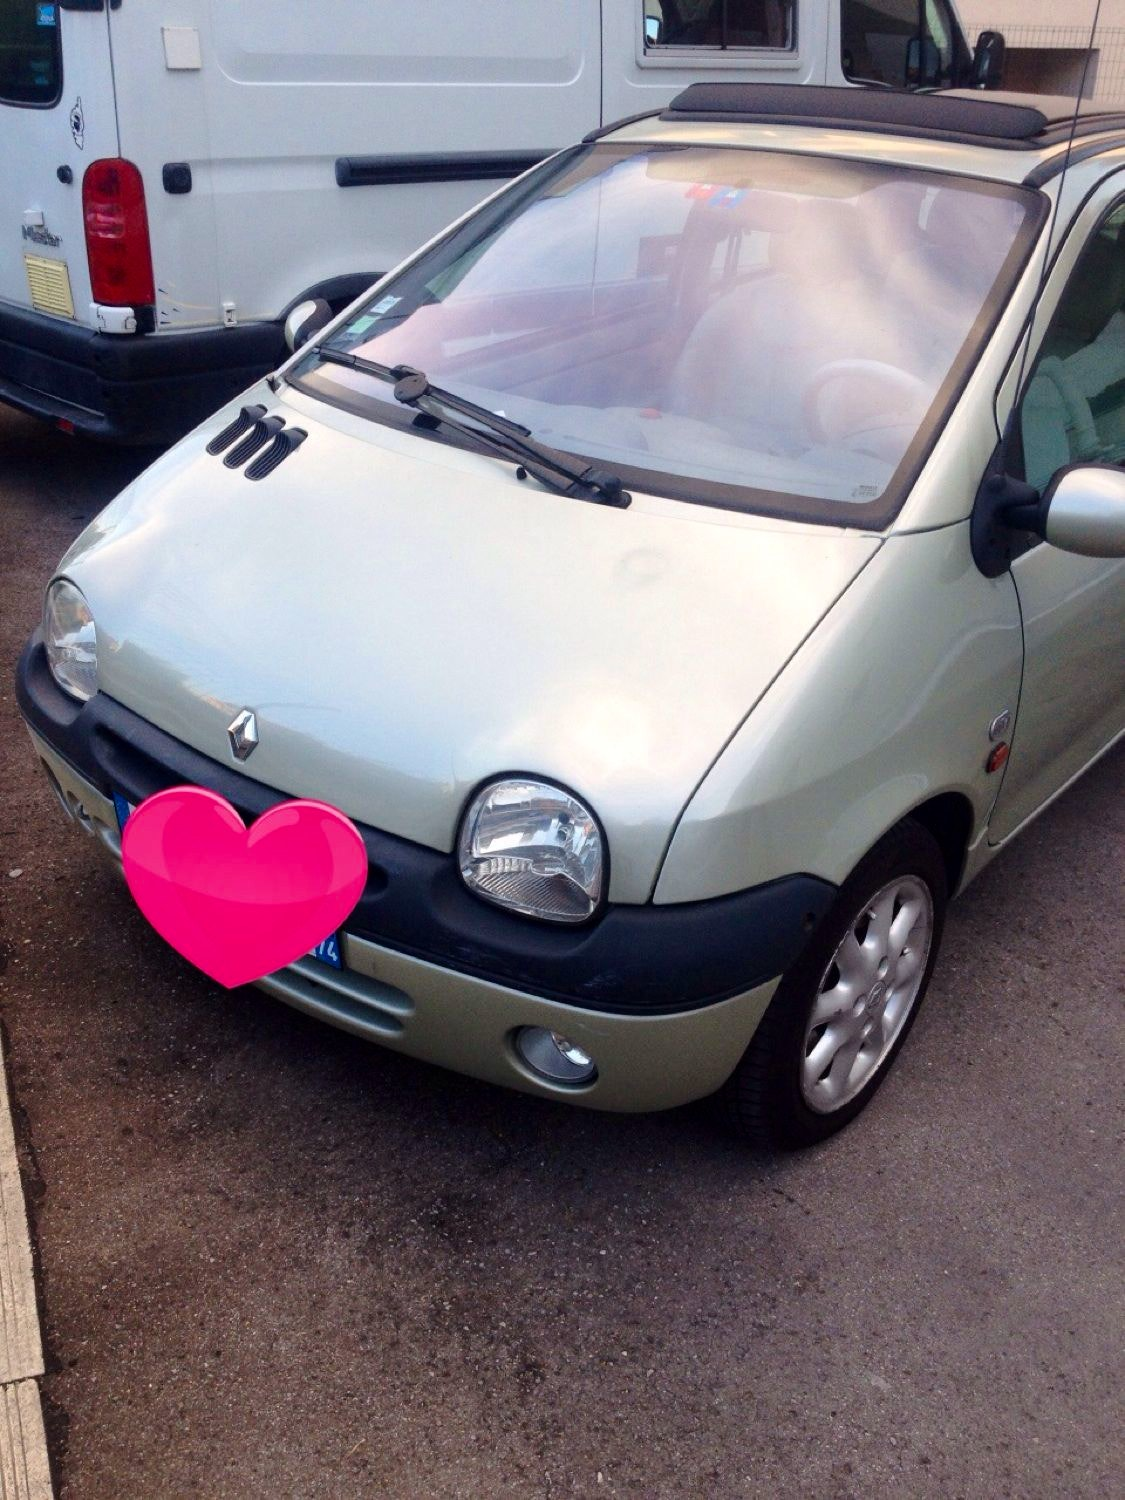 Renault Twingo Initiale 1.2 16v, 2001, Essence